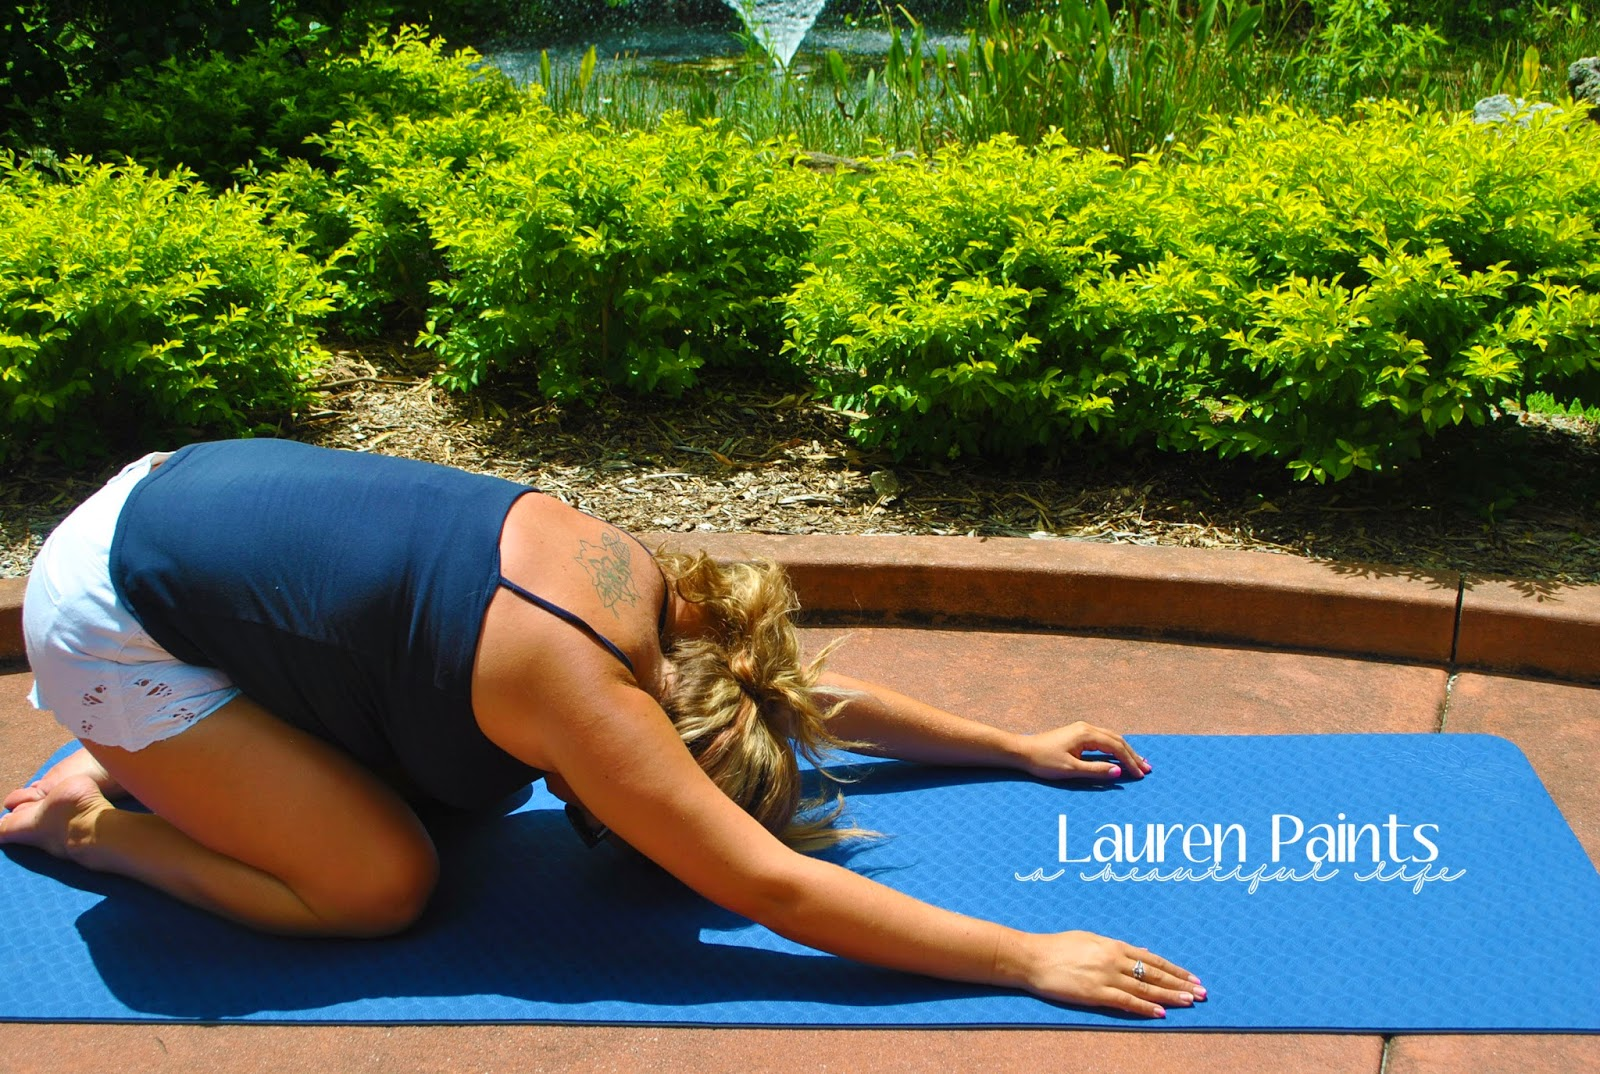 Child's Pose #EverybodyYOGAchallenge hosted by Lauren Paints